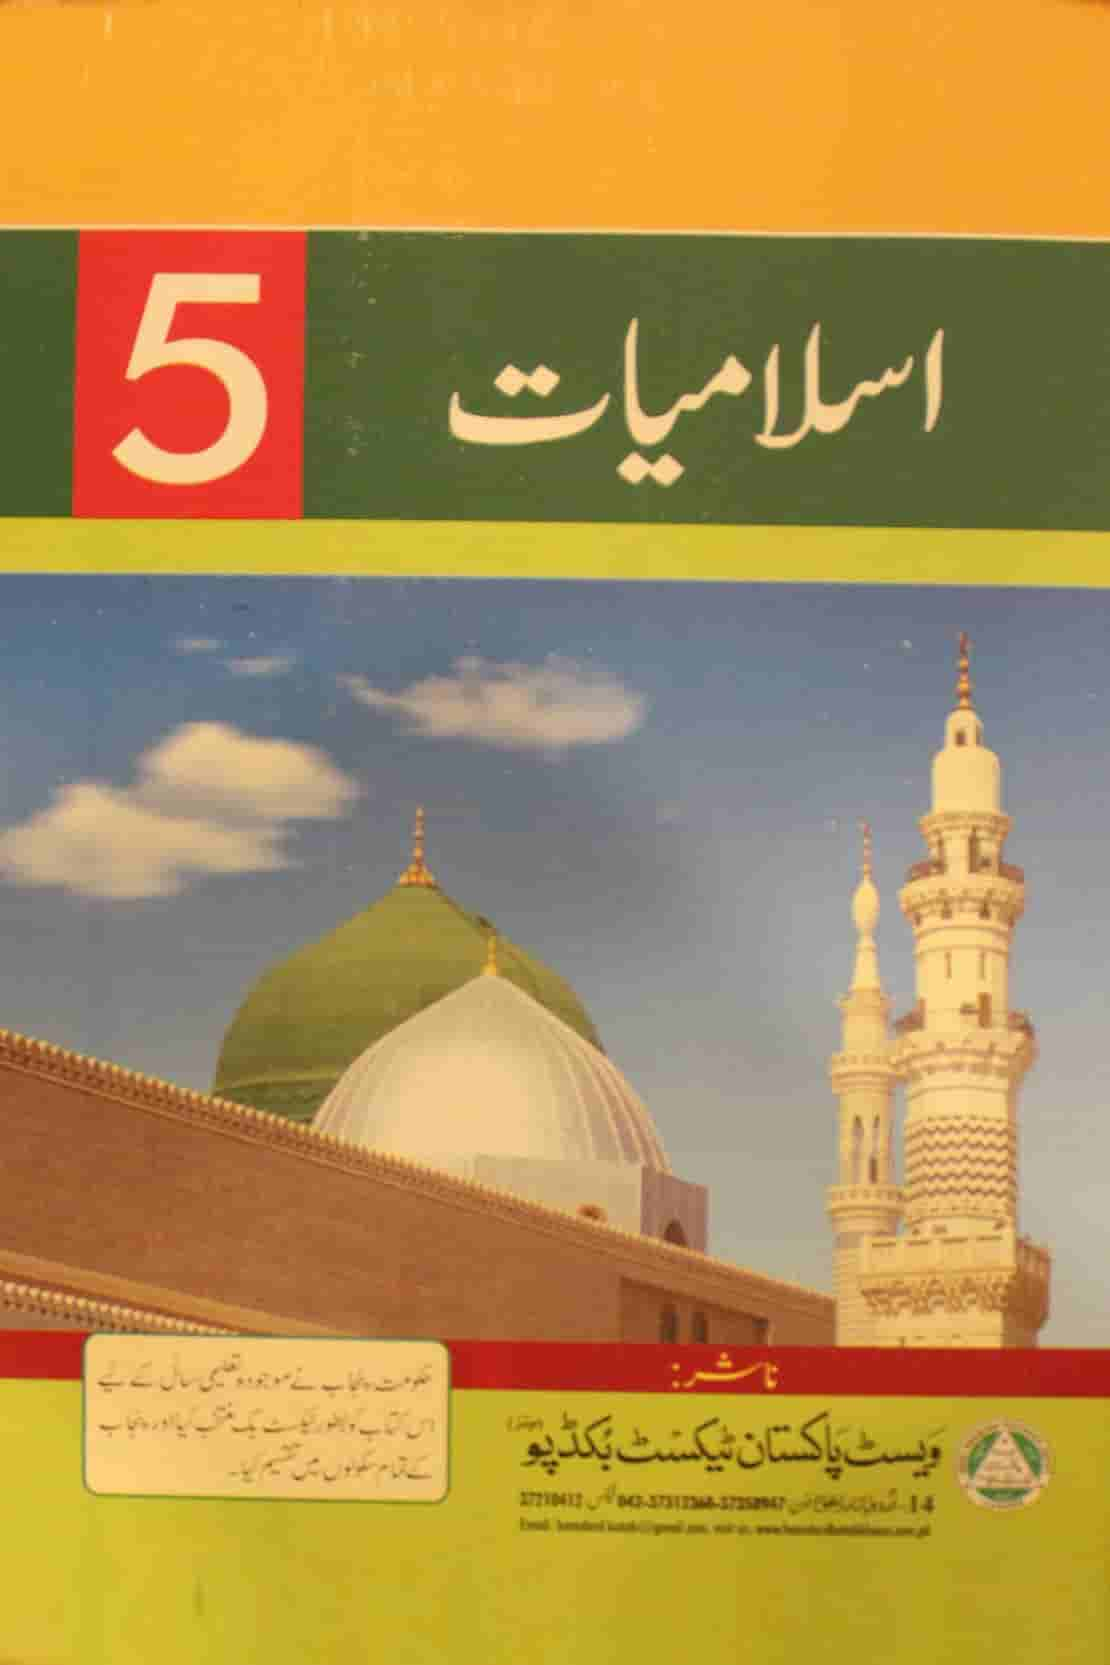 ISLAMIAT 5 TEXT BOOK BOARD